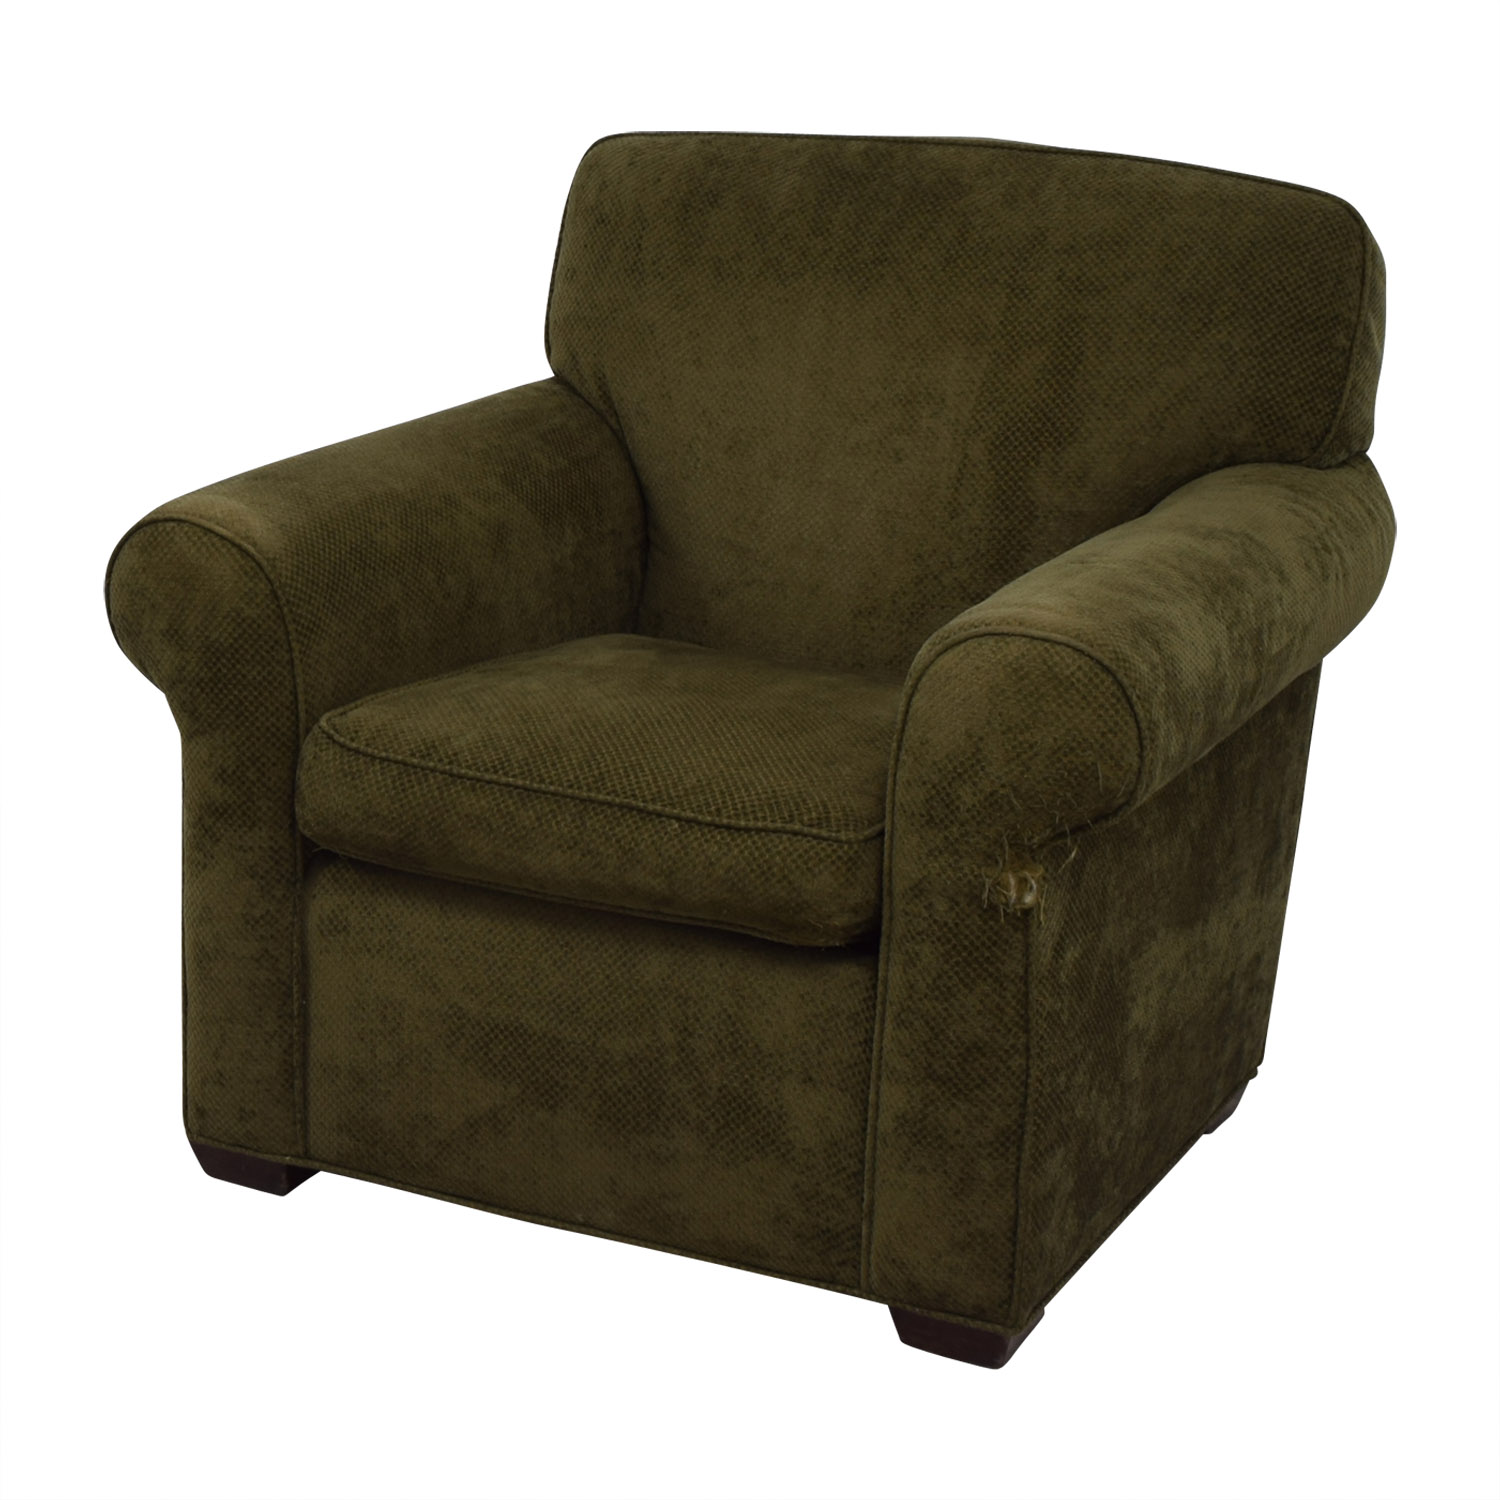 shop Large Olive Green Accent Chair Chairs